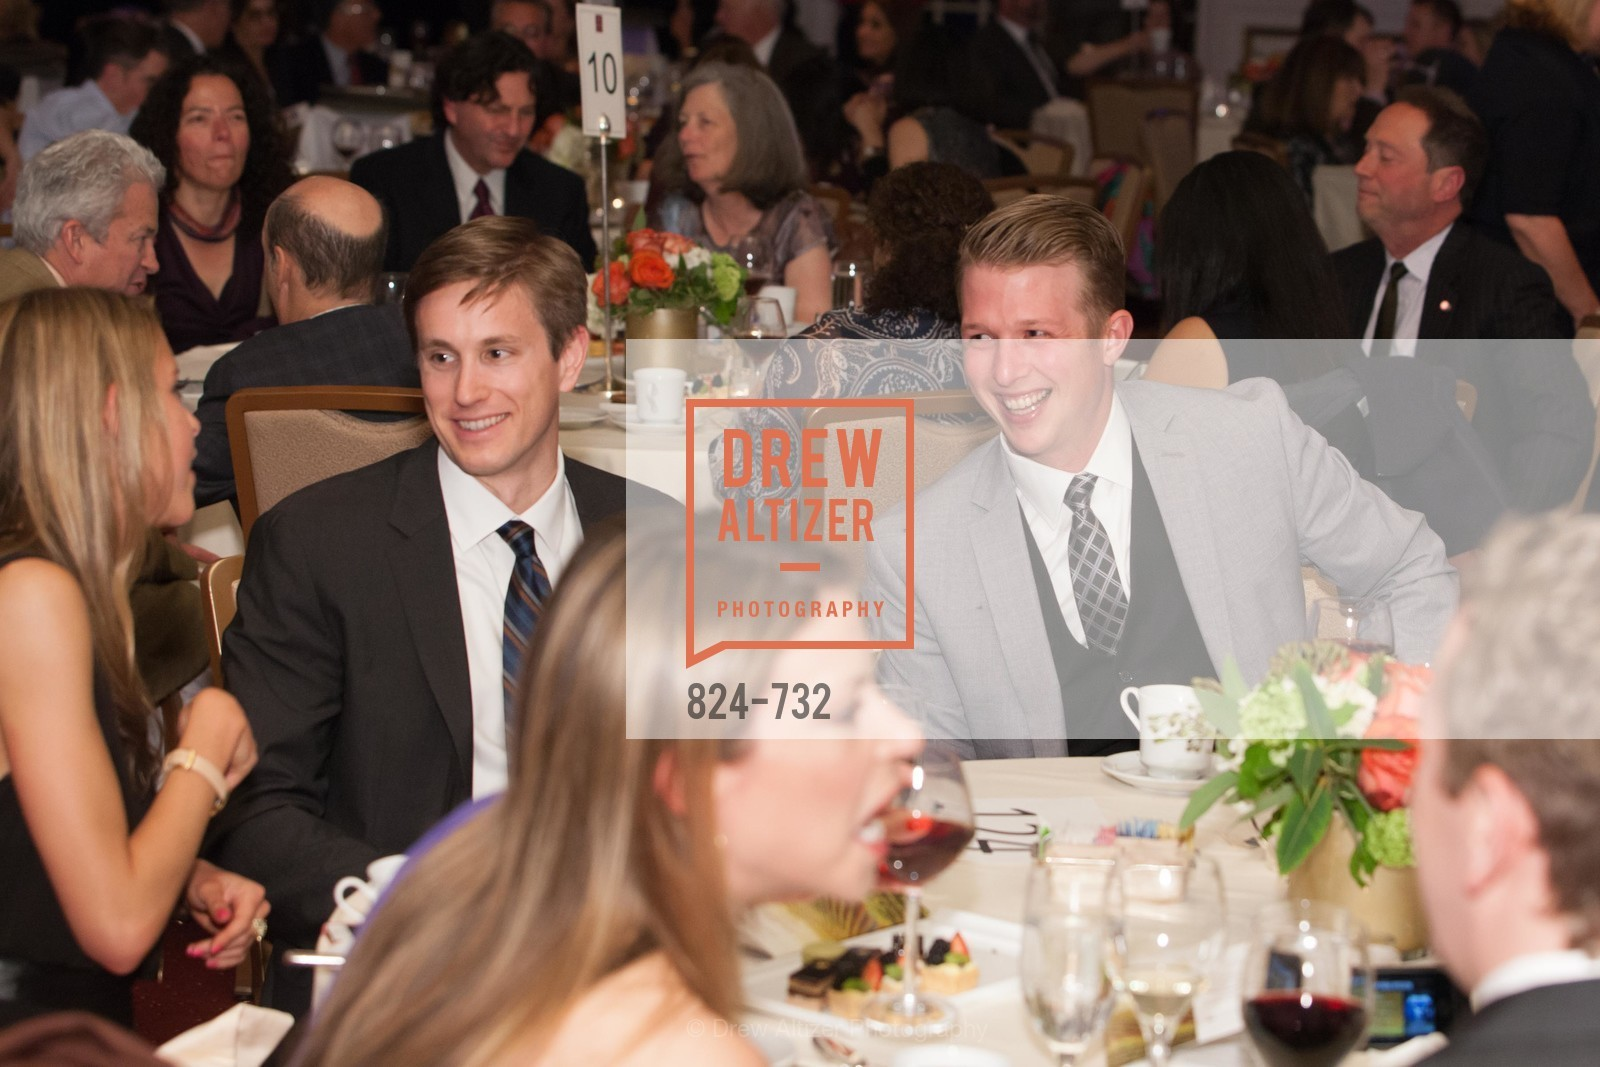 Extras, CROHN'S AND COLITIS FOUNDATION'S 18th Annual California Wine Classic, May 16th, 2015, Photo,Drew Altizer, Drew Altizer Photography, full-service event agency, private events, San Francisco photographer, photographer California